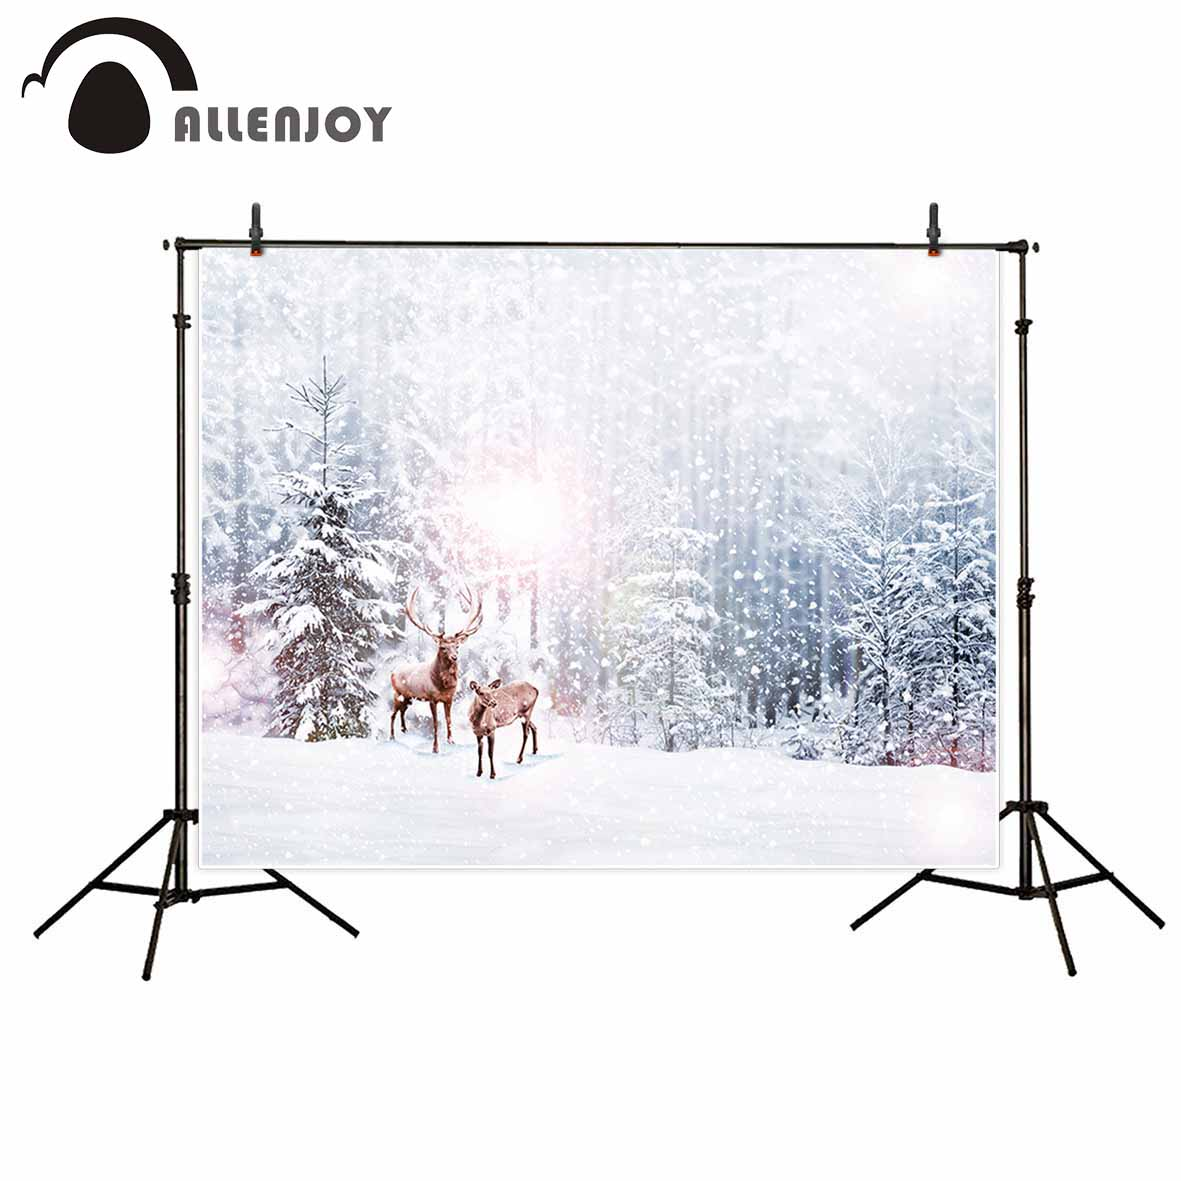 Allenjoy Winter background forest pine elk snow photography backdrops christmas decorations new backdrops photo studio upgrade wifi in car backup rear view reversing camera vechile wireless cam hd for android ios device for any car styling 12v page 4